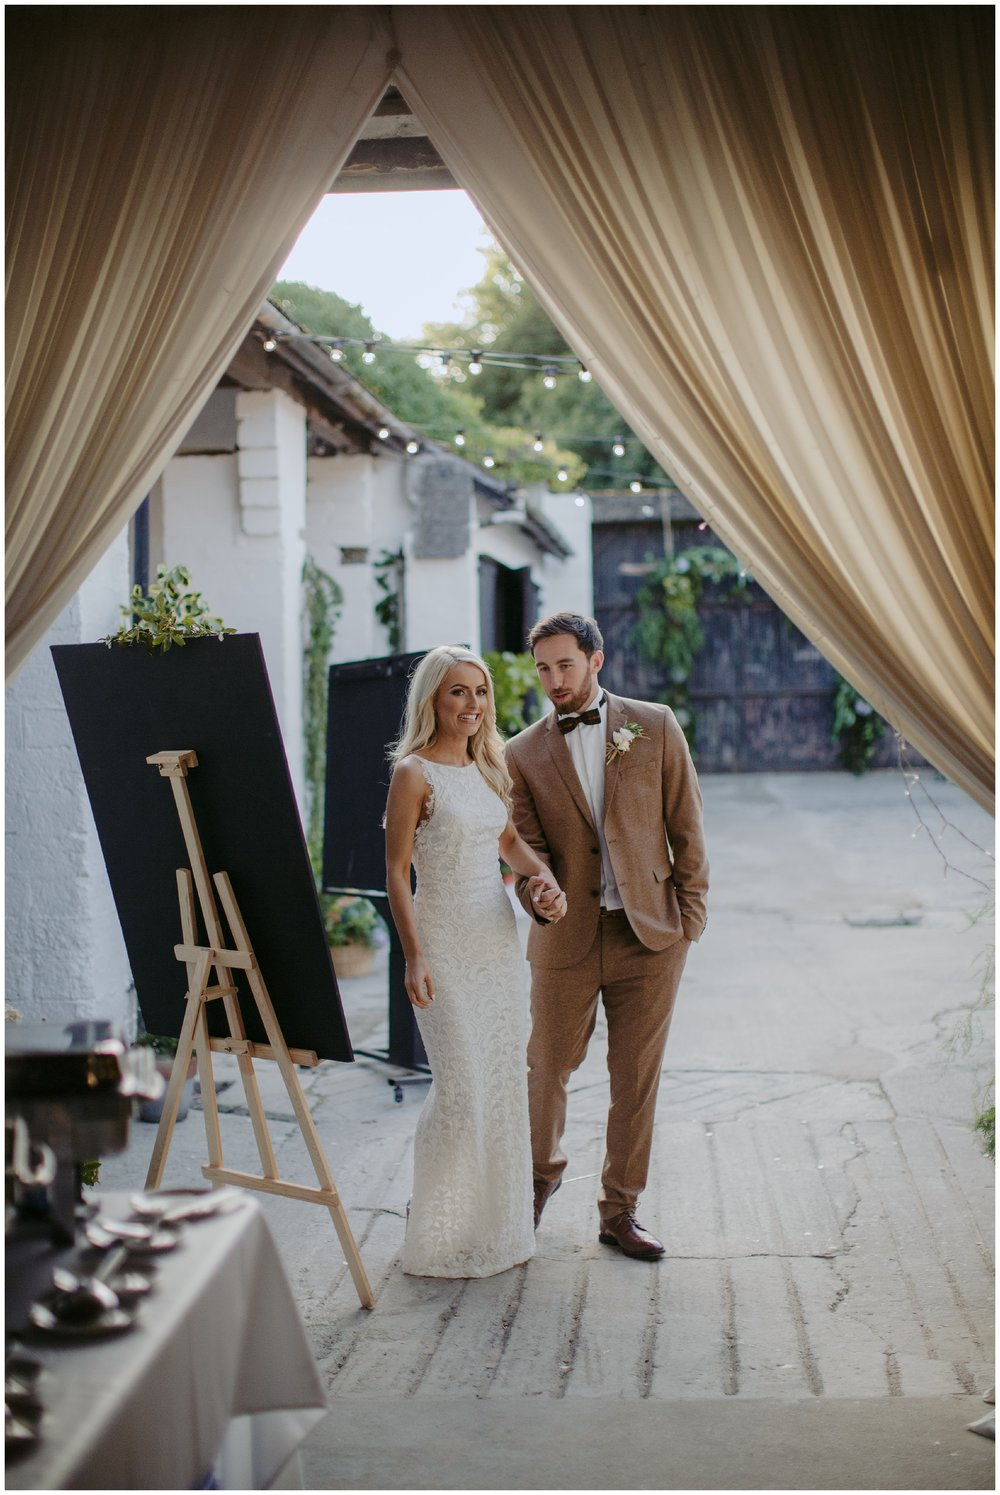 tara_neil_the_mill_alternative_quirky_wedding_jude_browne_photography_0184.jpg